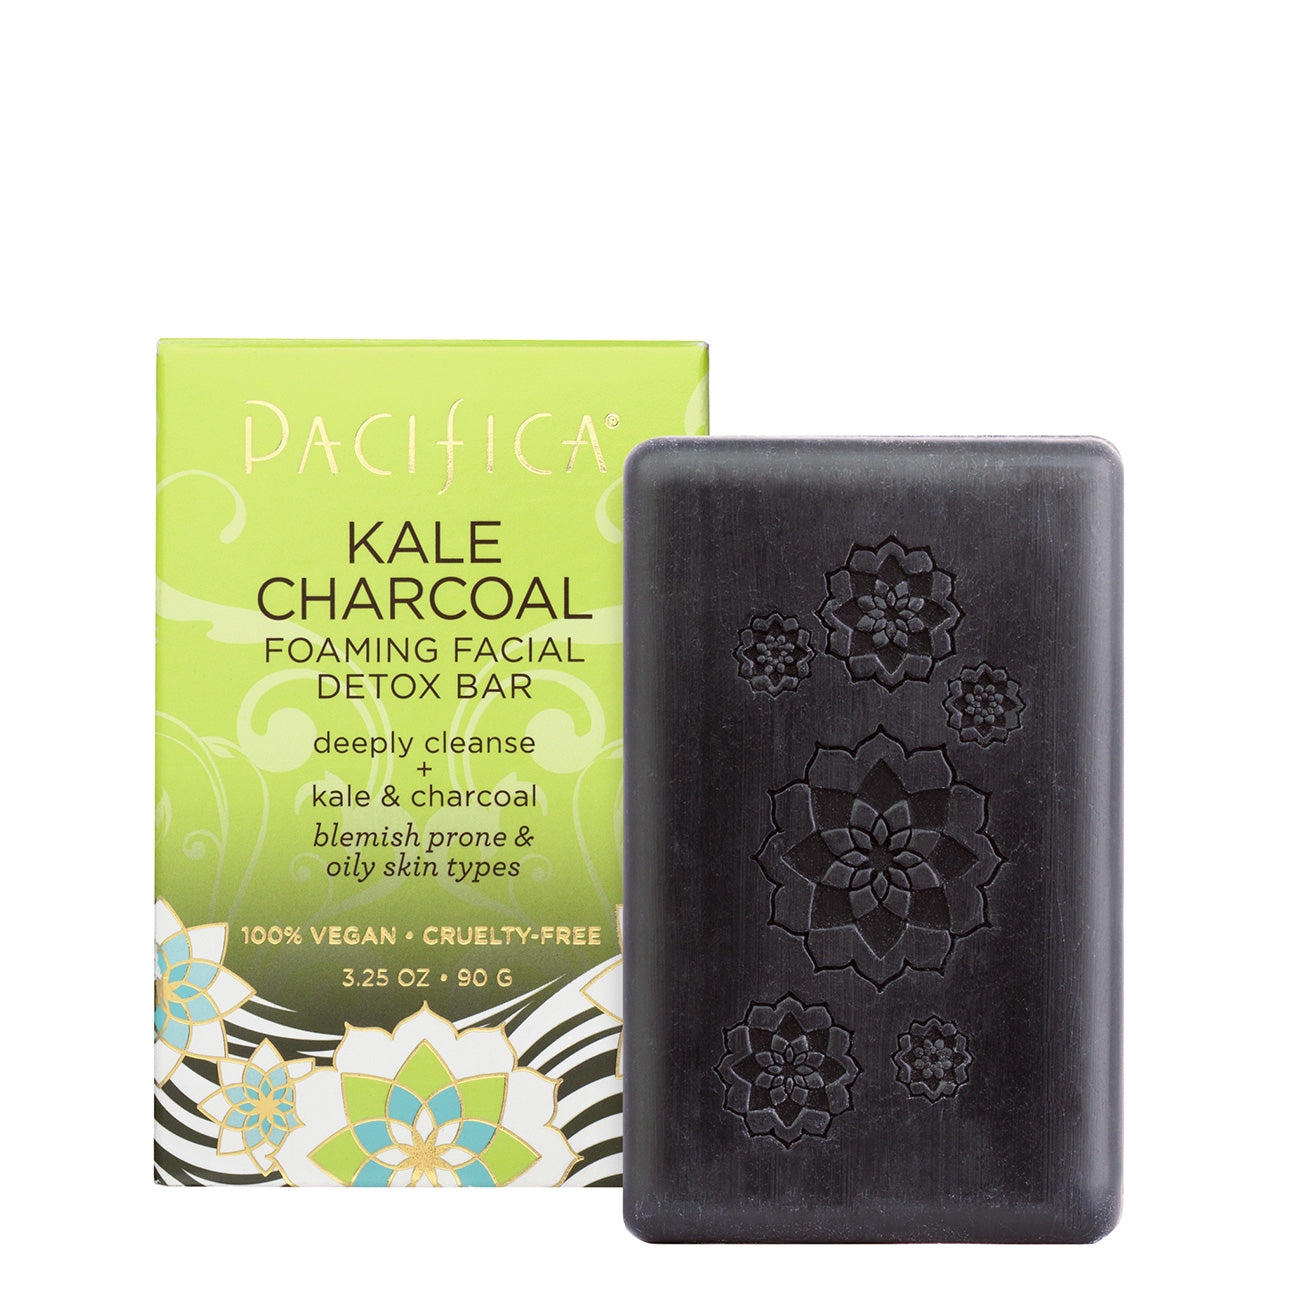 Kale Charcoal Foaming Facial Detox Bar - Skin Care - Pacifica Beauty